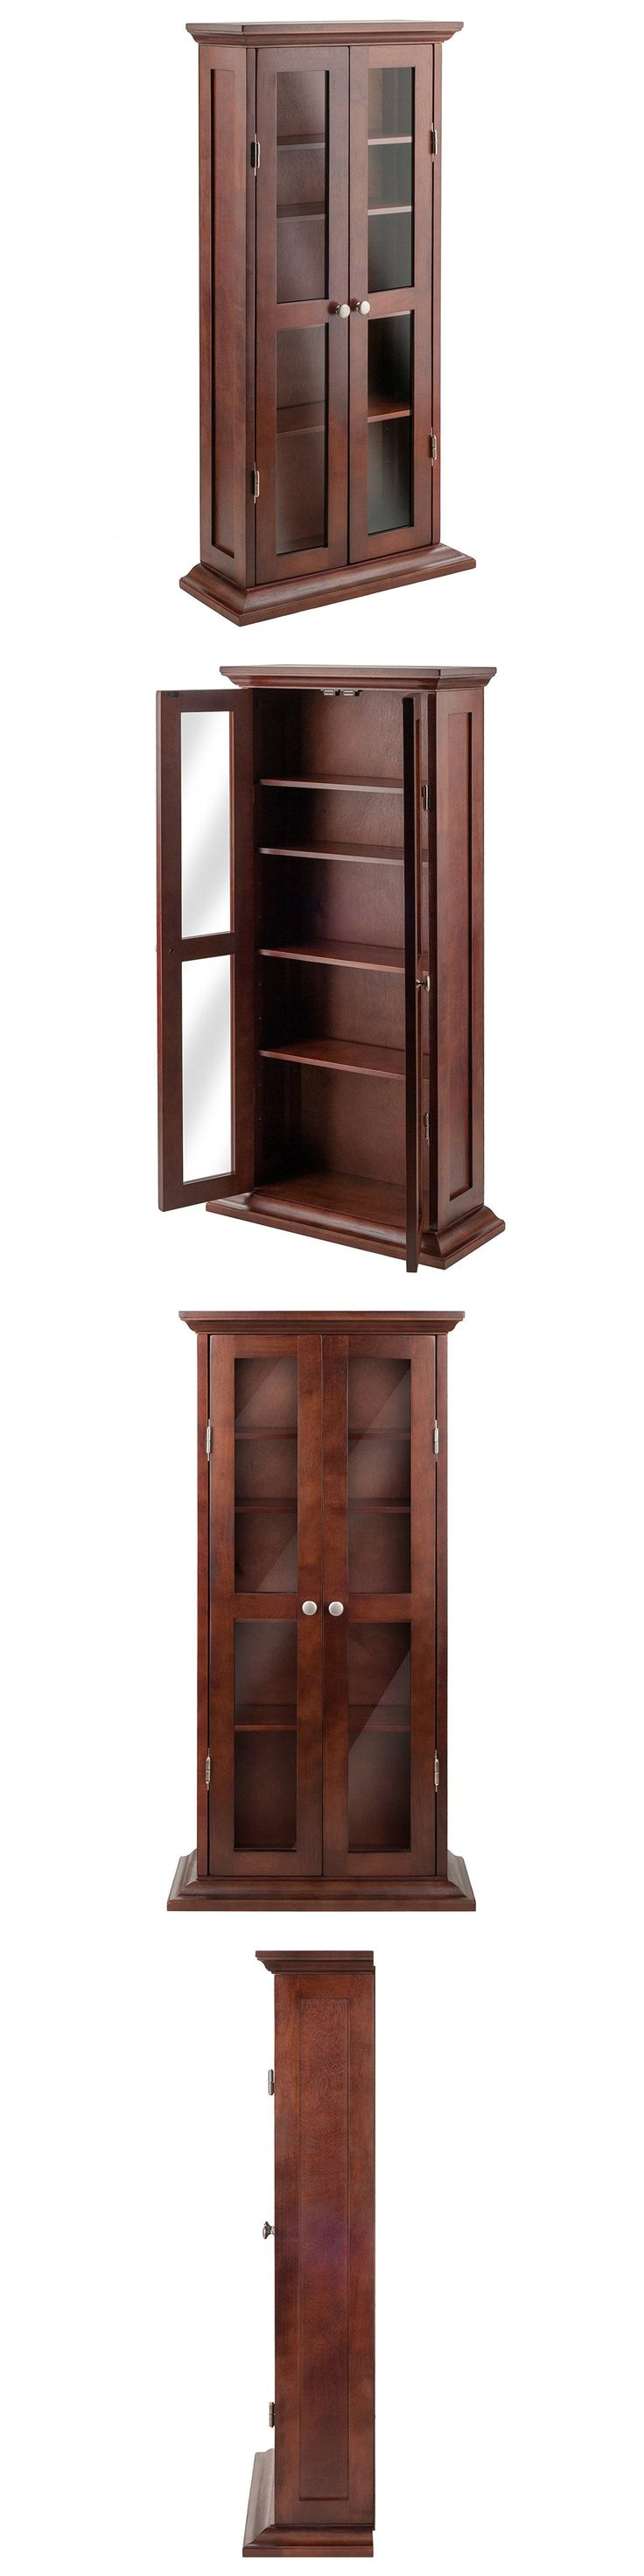 CD and Video Racks 22653: Media Storage Cabinet With Doors Wood Glass Cd Dvd Display Curio Adjustable -> BUY IT NOW ONLY: $110.95 on eBay!